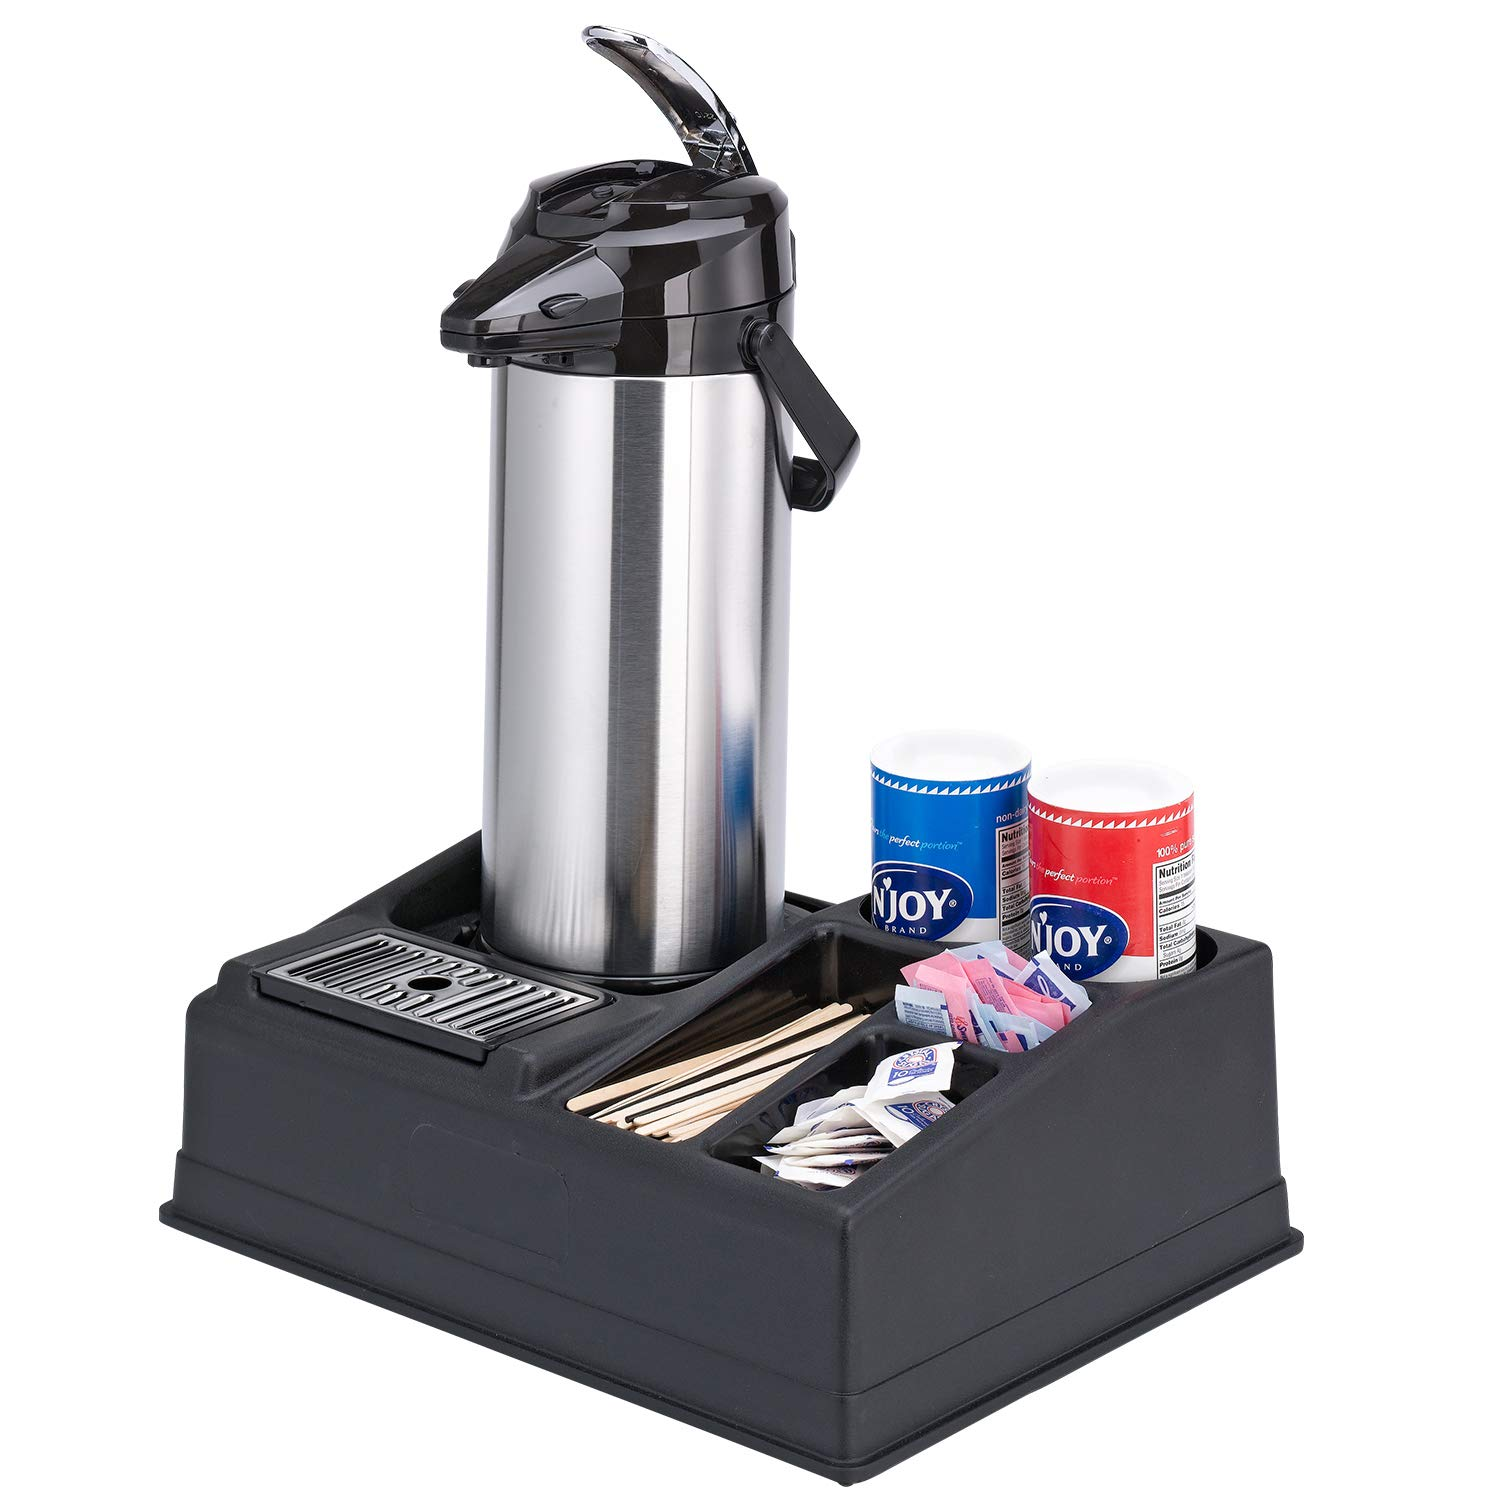 Service Ideas APR15BL Airpot Stand and Condiment Station, Holds 1 Airpot-5 Condiments, Black Plastic by Service Ideas (Image #4)